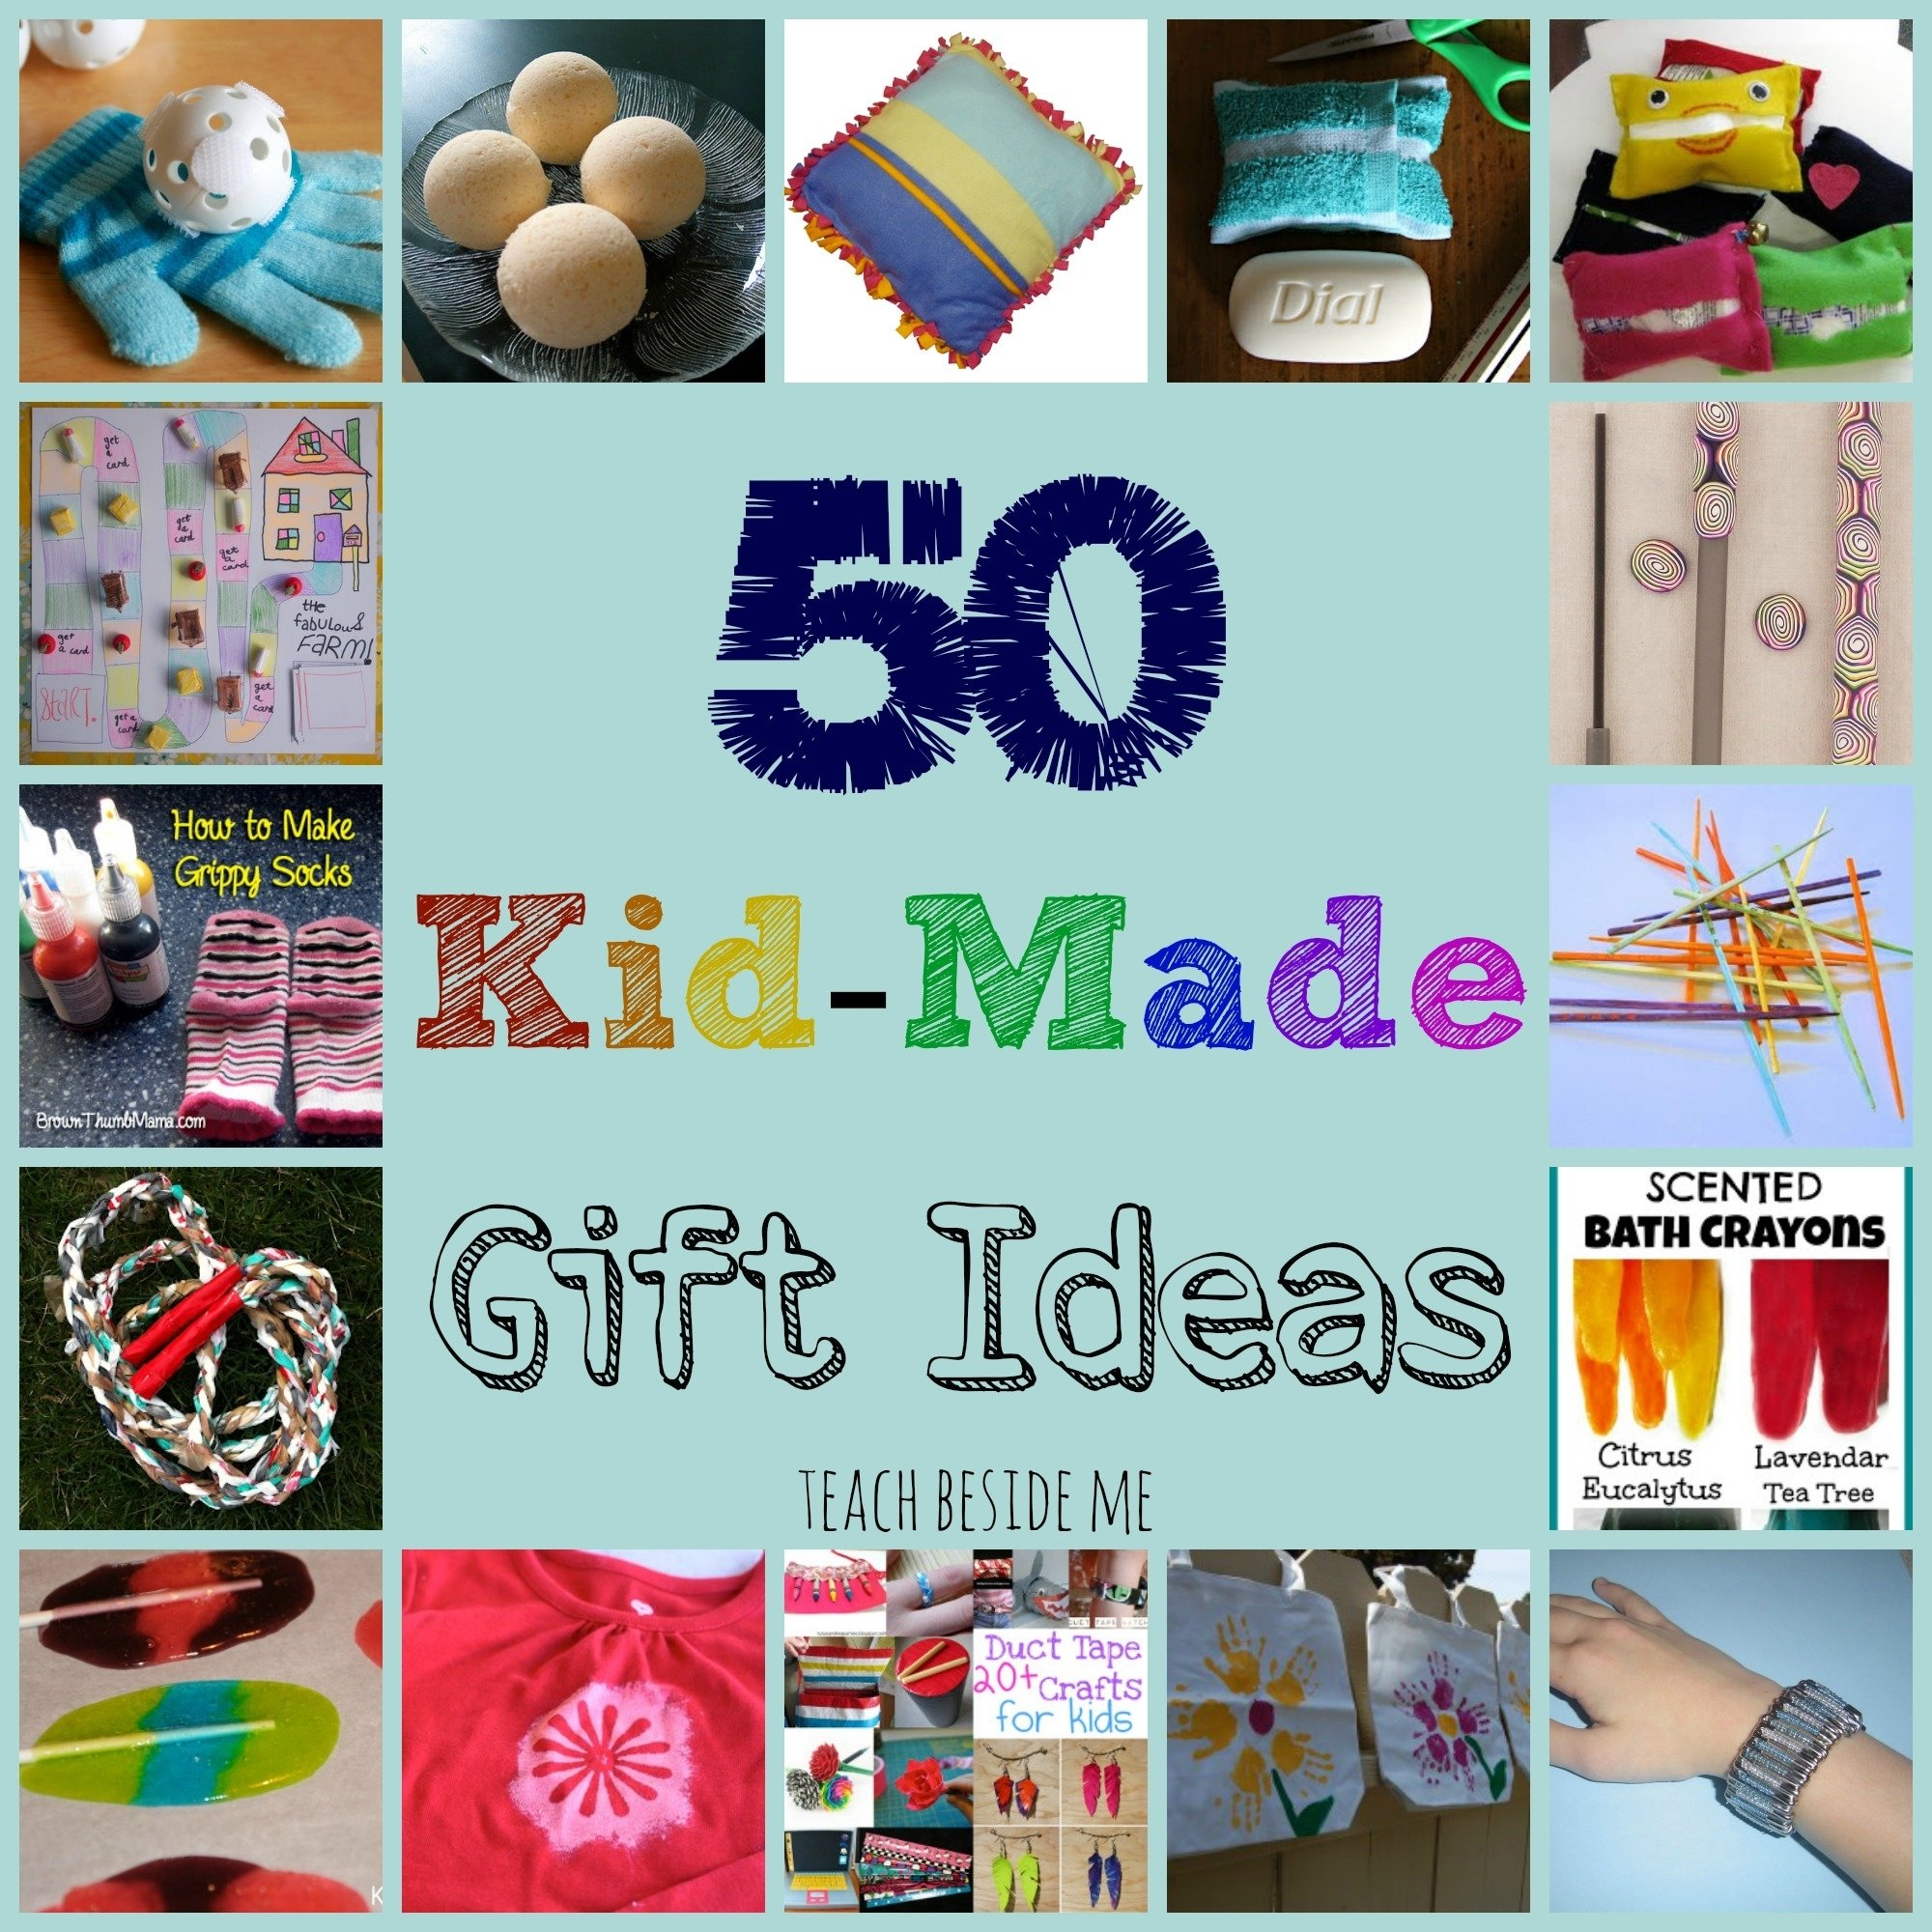 10 Most Popular Gift Ideas For Kids To Make kid made gift ideas for family teach beside me 7 2020